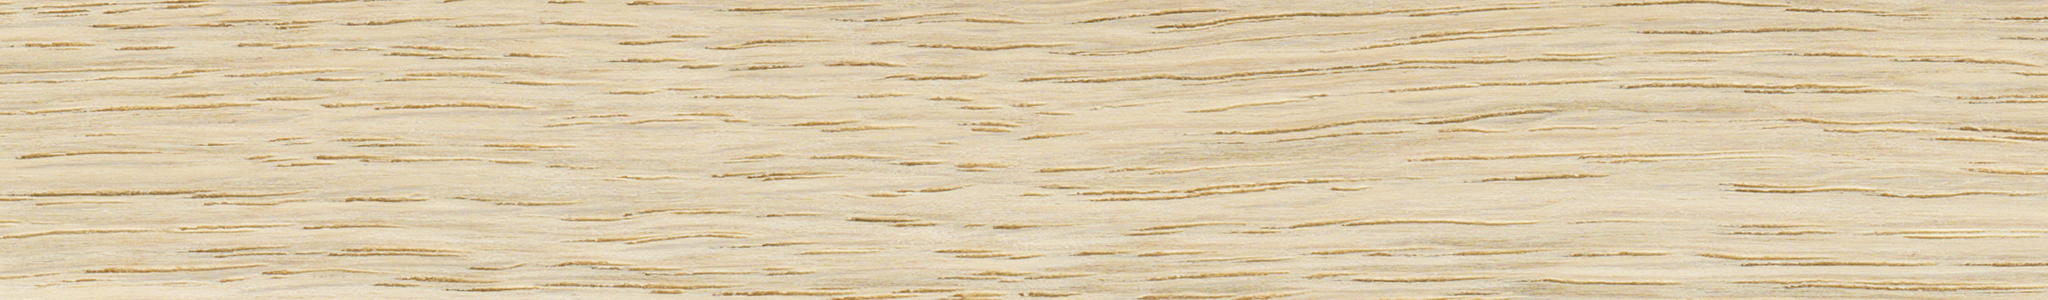 HD 74120 Veneer Edge European Oak Preglued